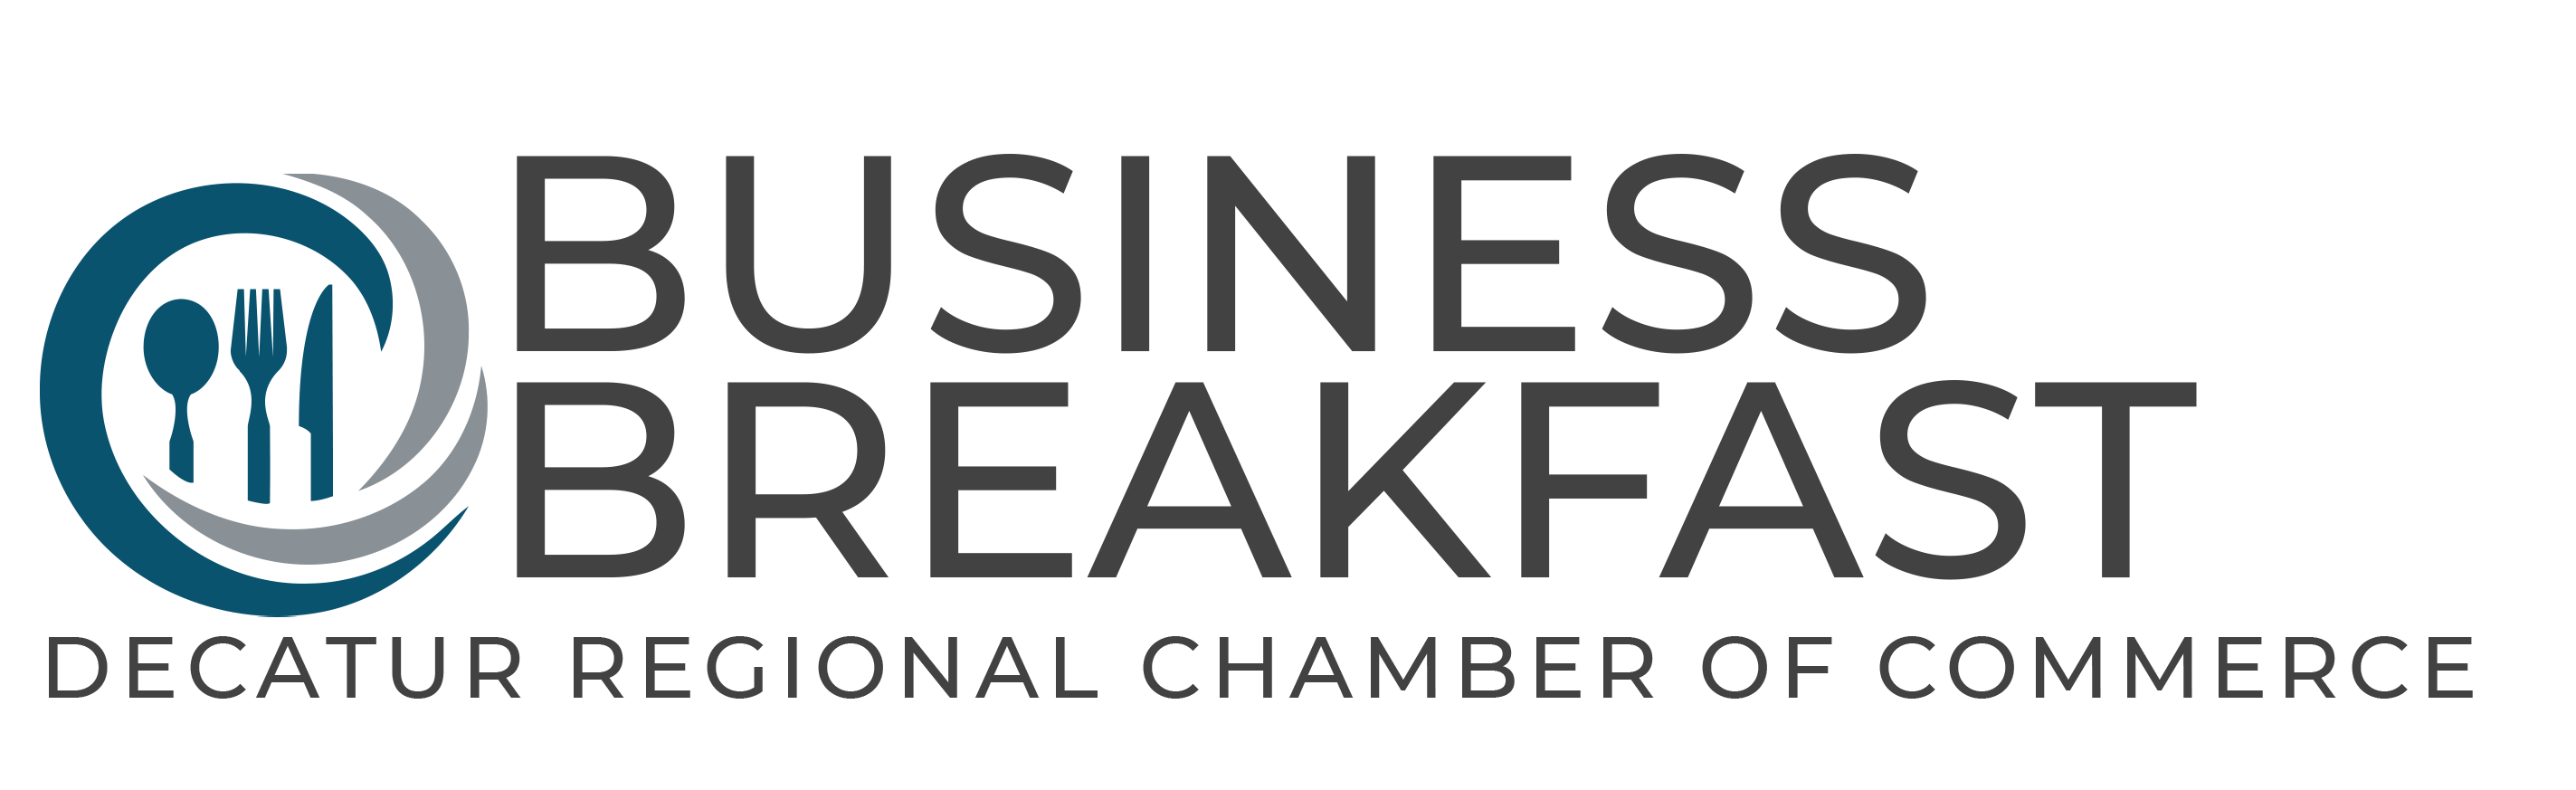 DRCC-Business Breakfast 2021